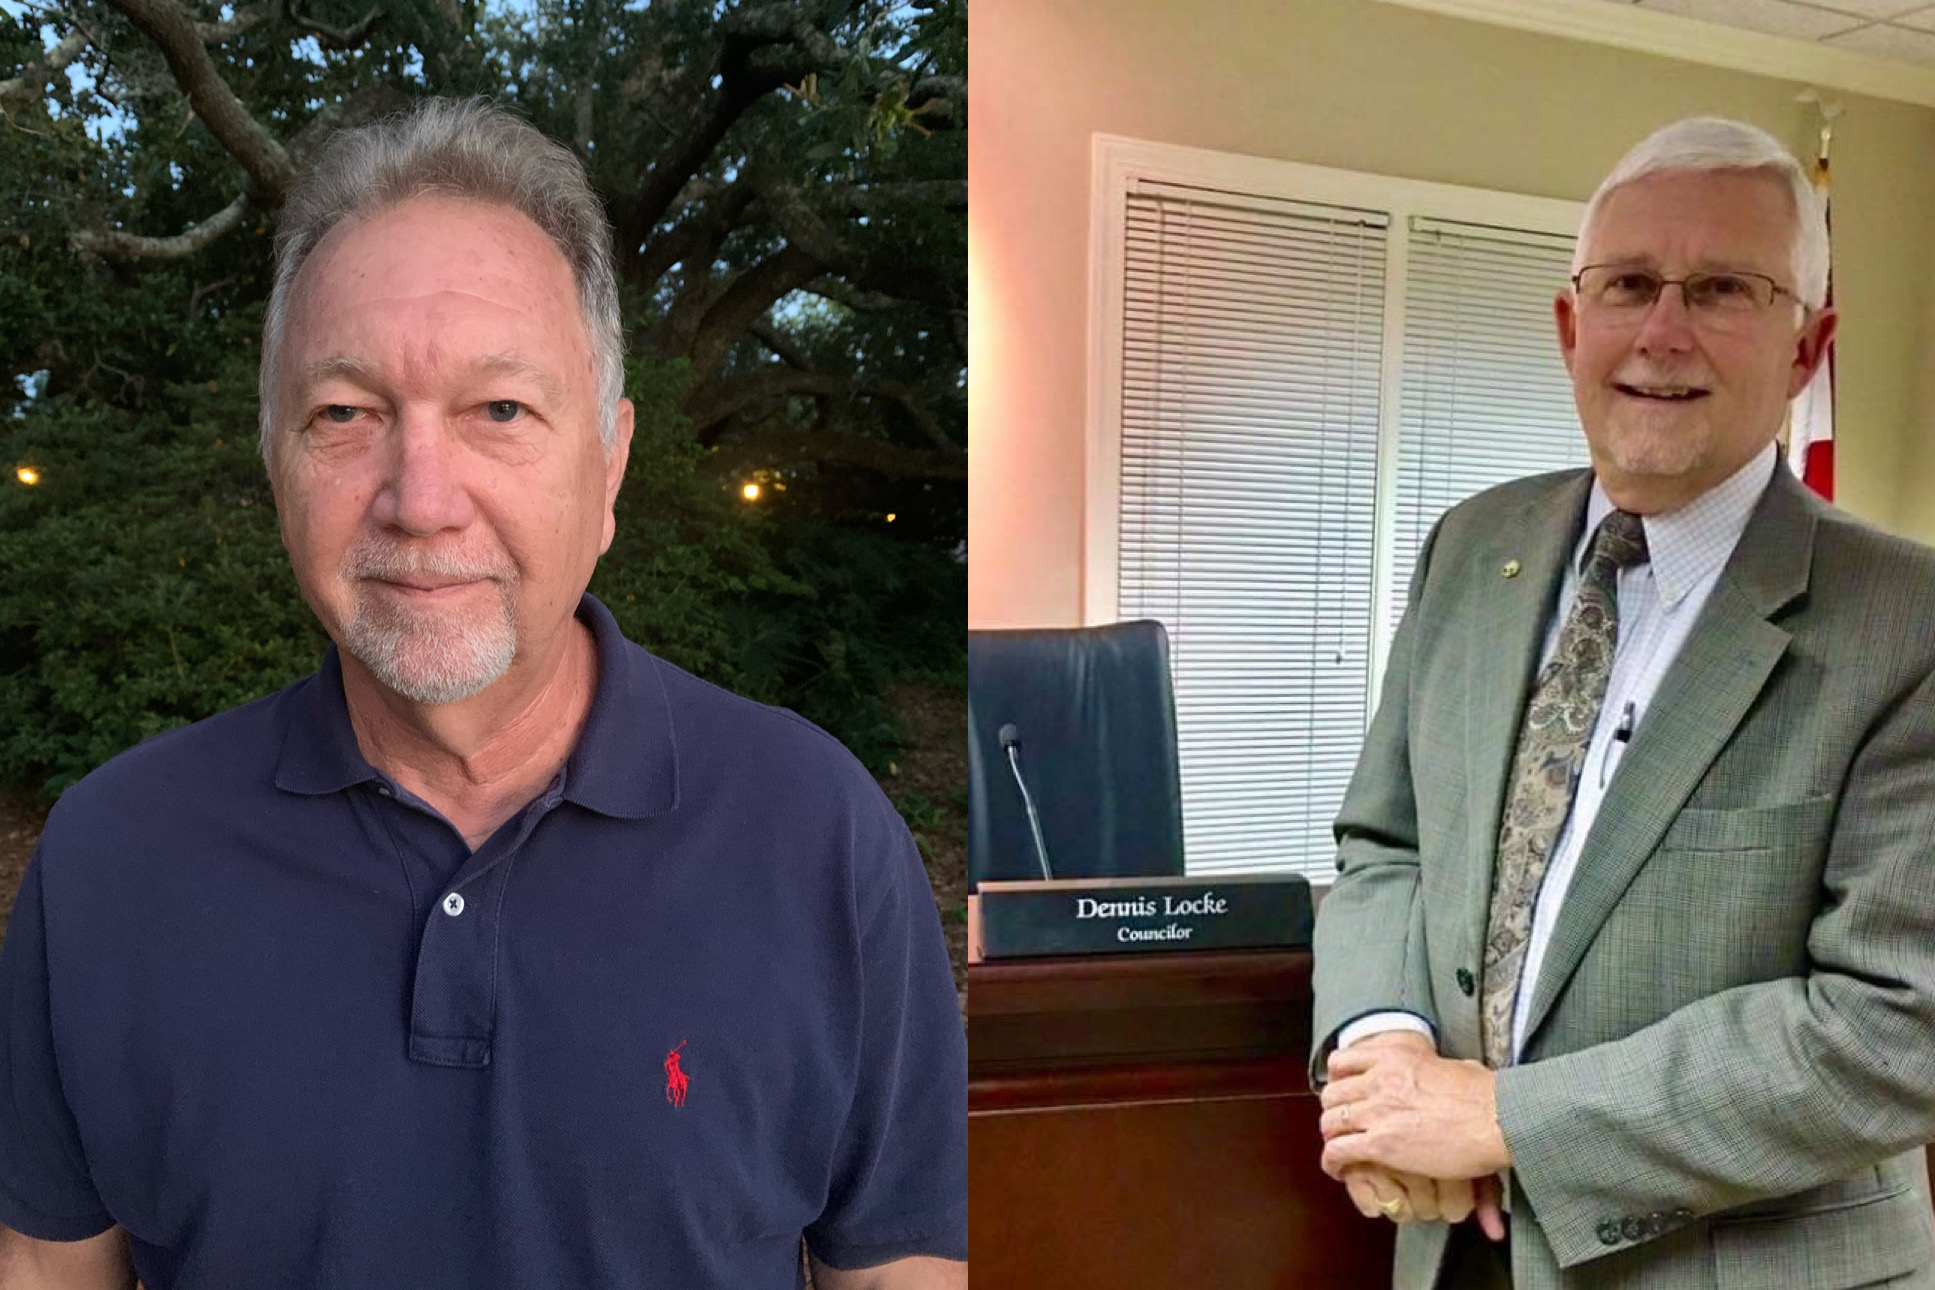 Councilors Locke, Thackerson resign from Clay City Council